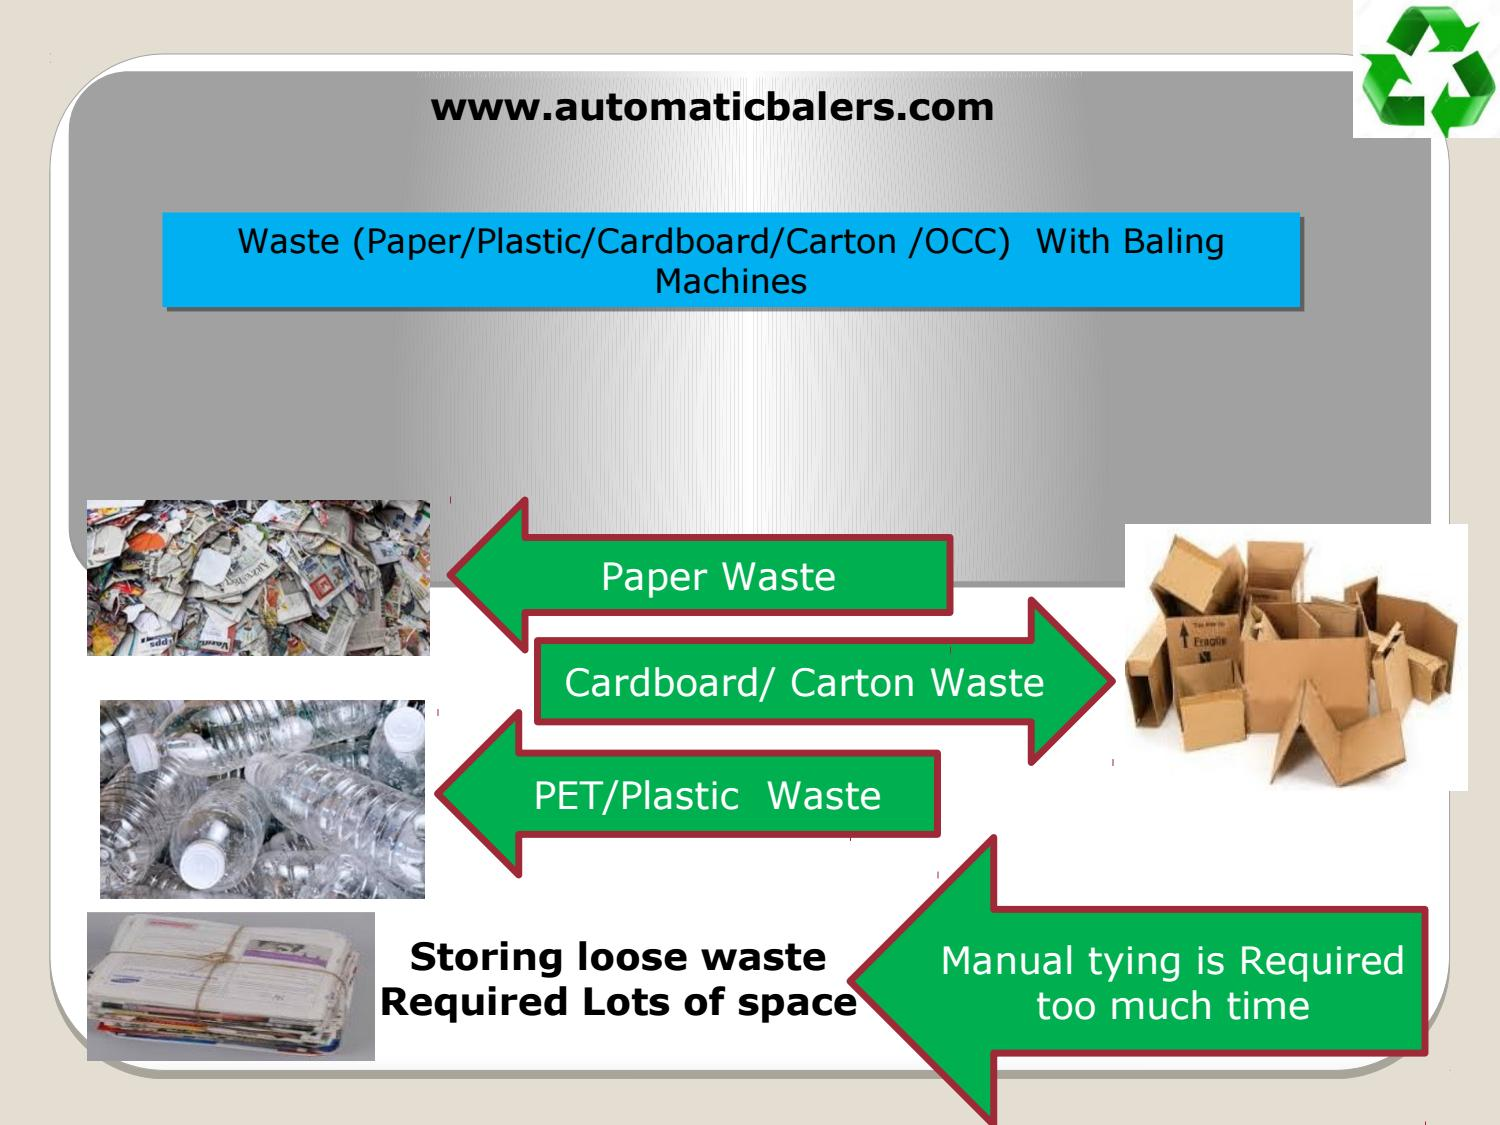 Waste (Paper/Plastic/Cardboard/Carton /OCC) With Baling